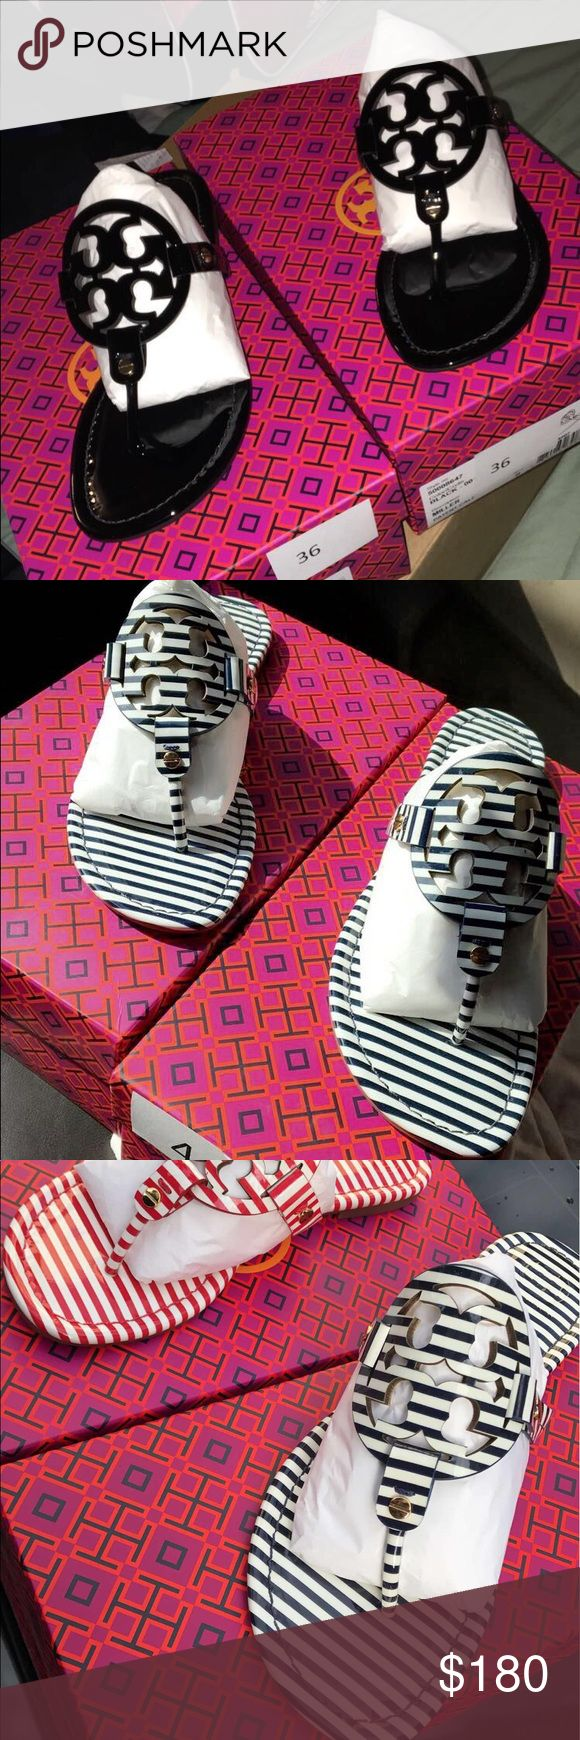 Tory burch sandals Brand Tory burch sandals for sale Tory Burch Shoes Sandals